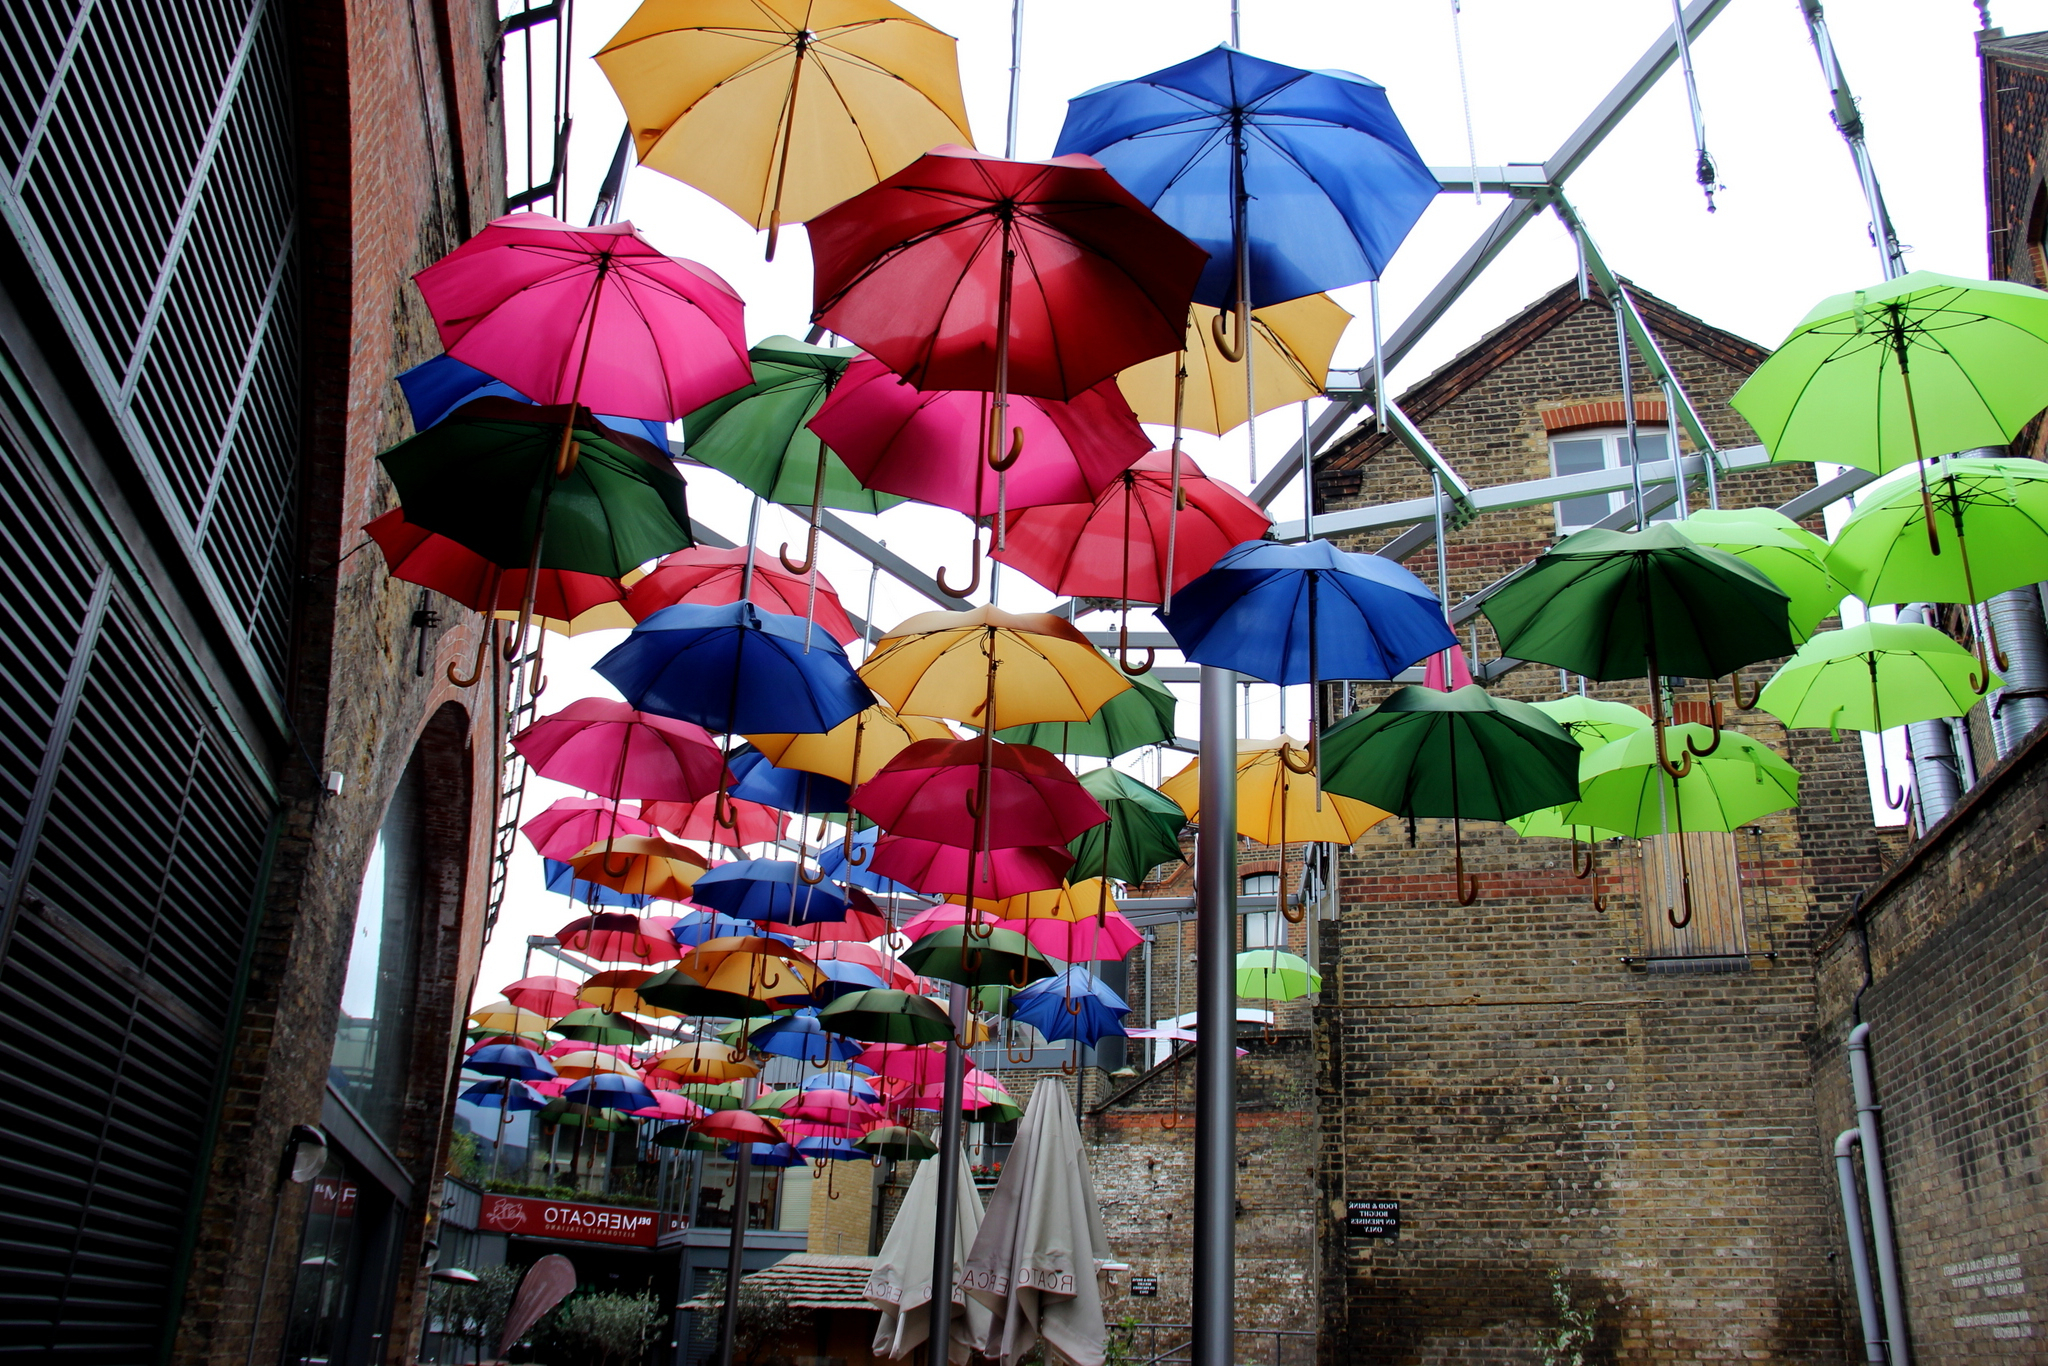 Travel: London Daily Diary 5 – Big Ben, Brick Lane & Borough Market Throughout Well Liked Wier Market Umbrellas (View 19 of 20)